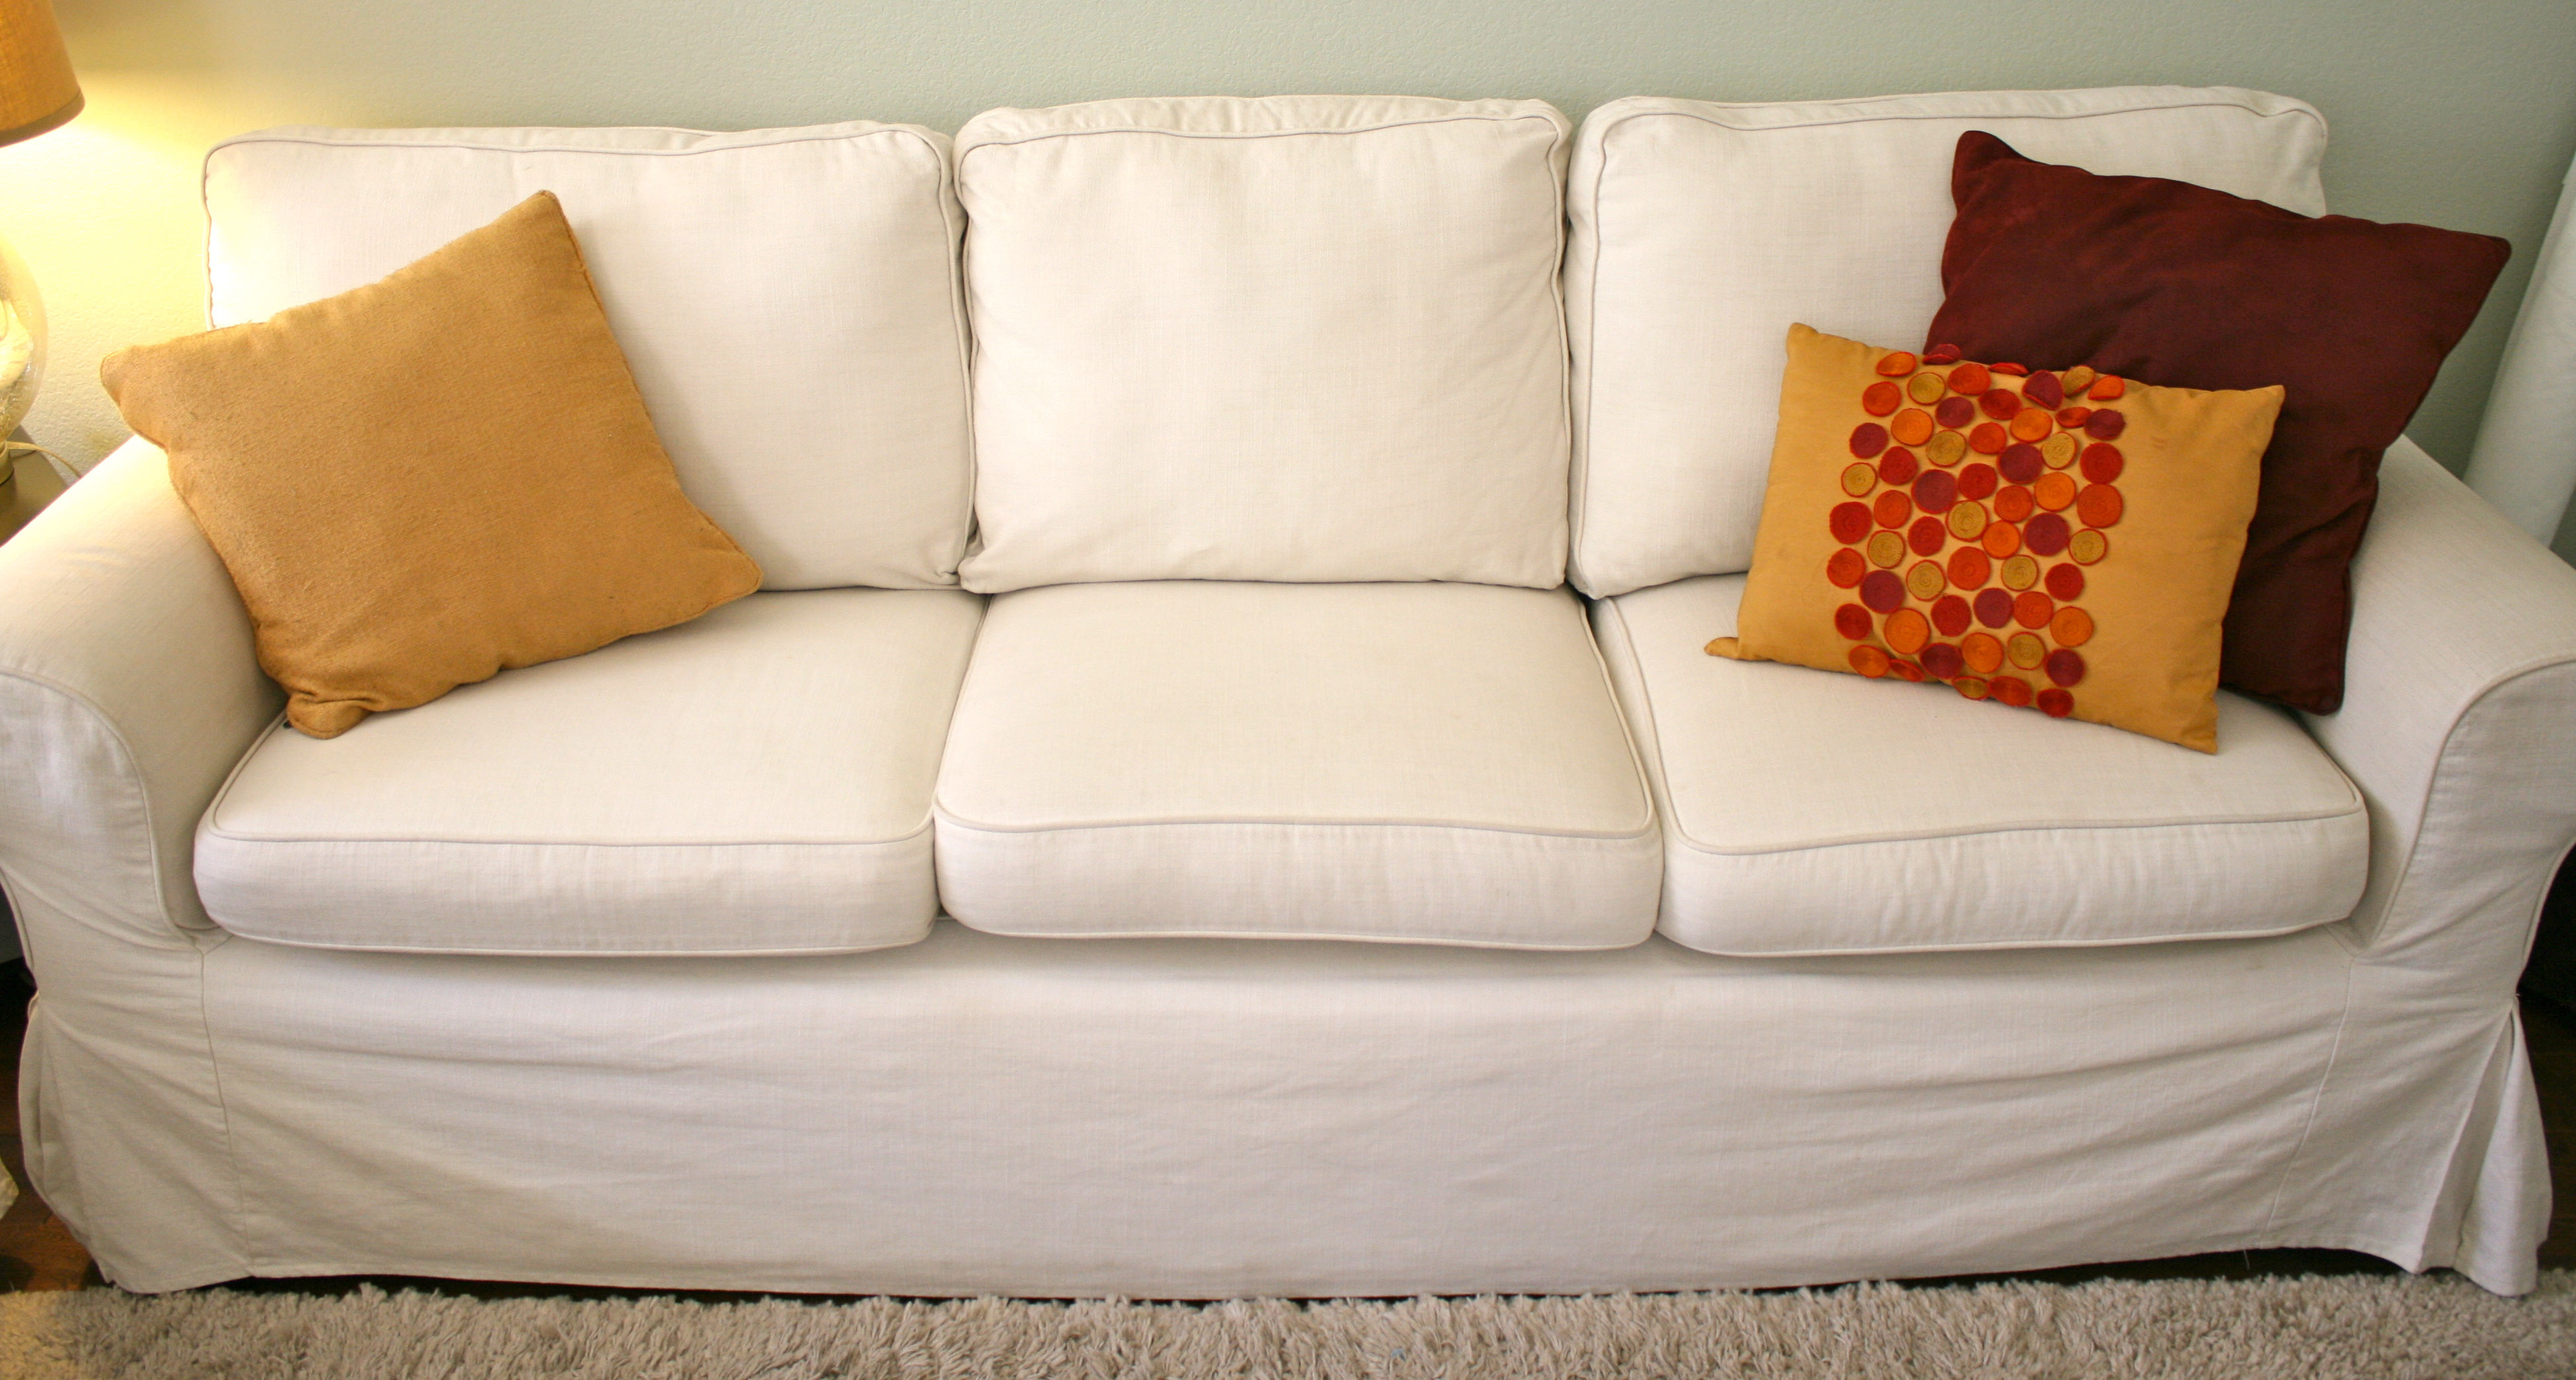 cleaning down filled sofa cushions roche bobois formentera heres how to make your sagging couch look plump